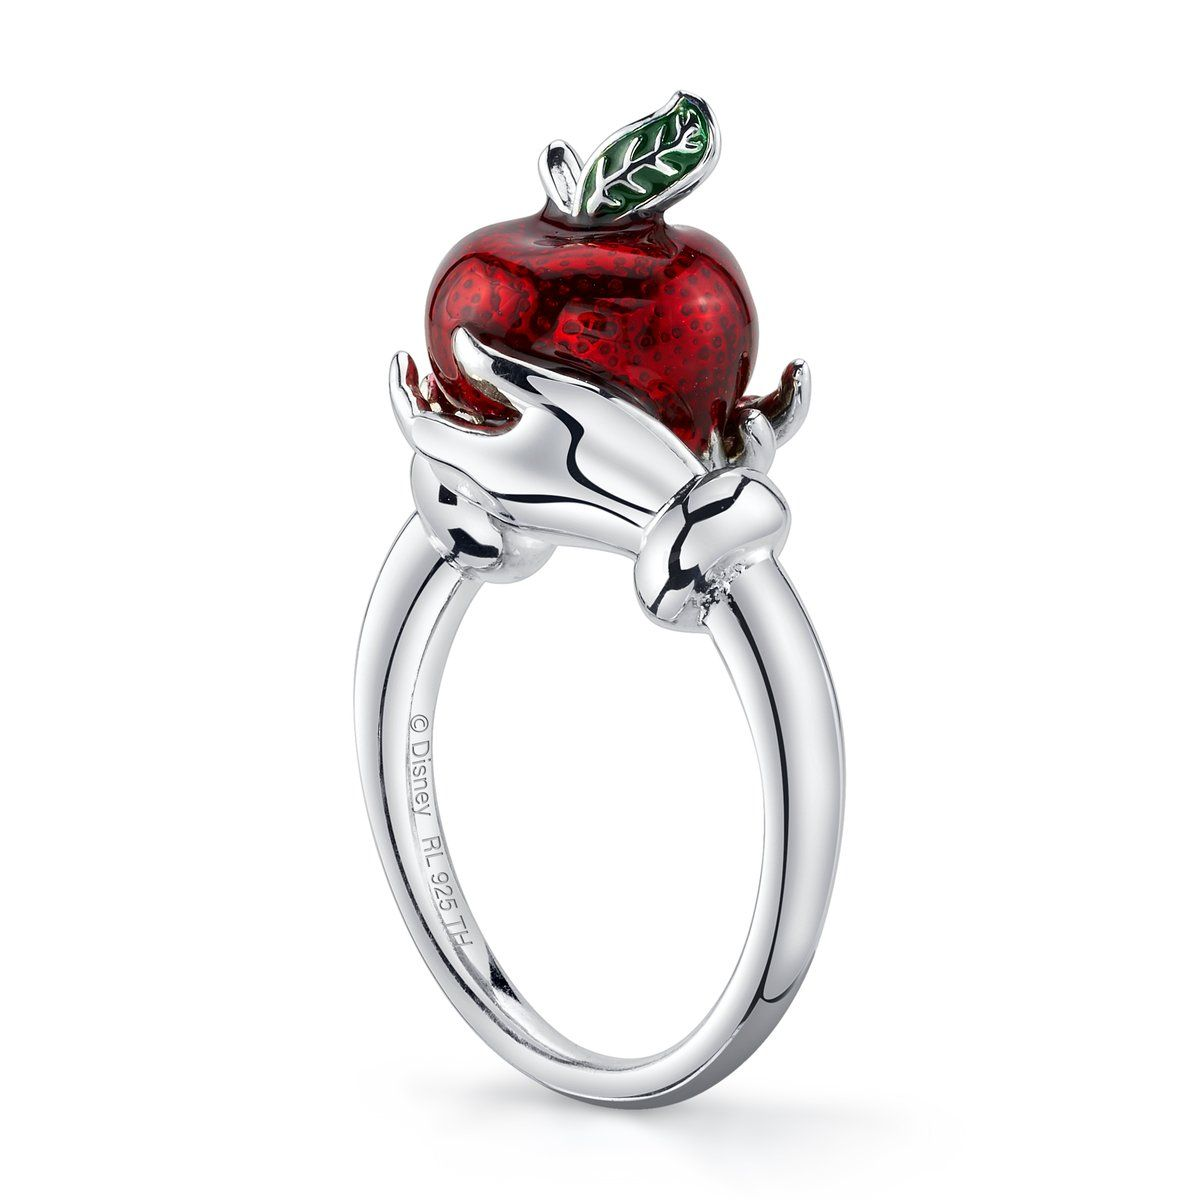 DISNEY'S SNOW WHITE & THE SEVEN DWARFS Fairest Apple Ring #snowwhite